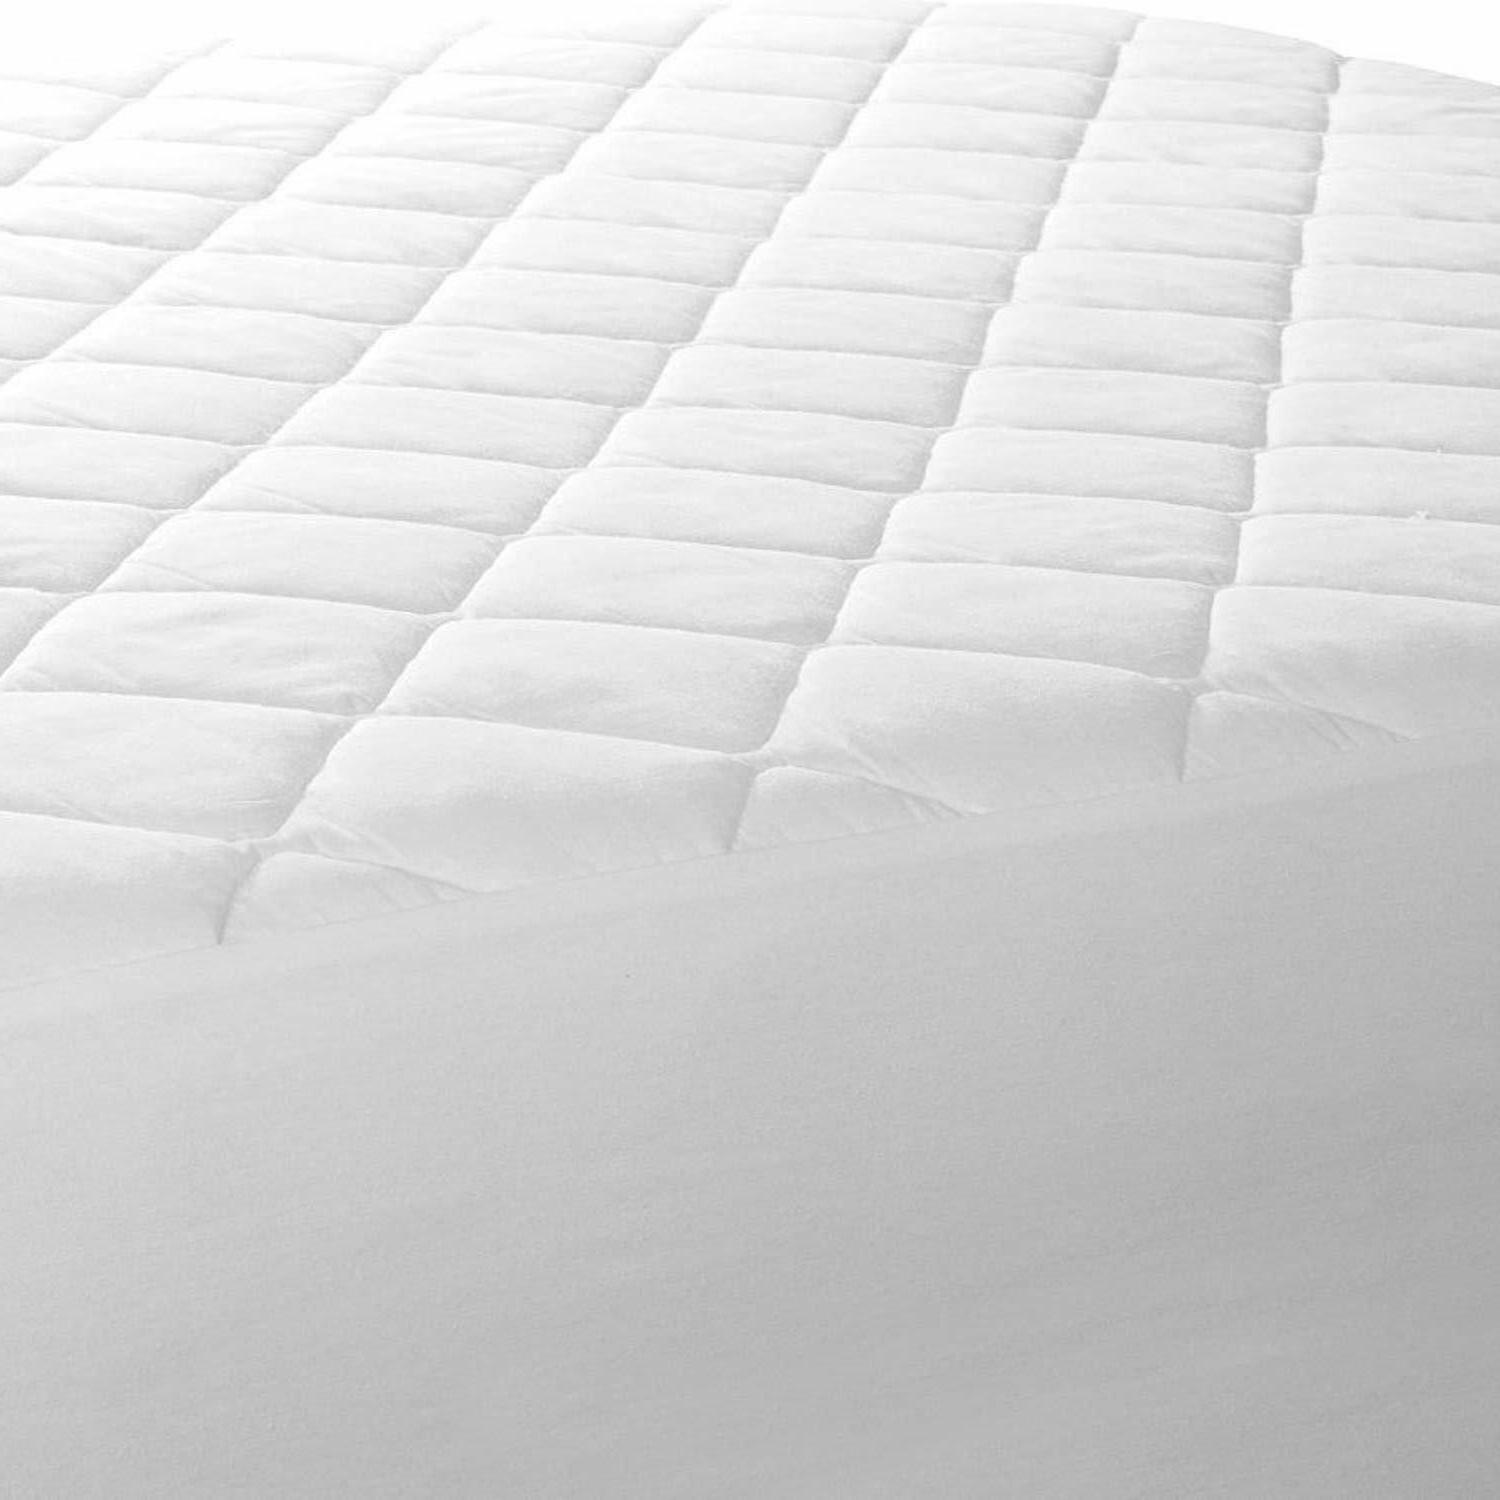 Queen Size Quilted Super Soft Durable Mattress Pad